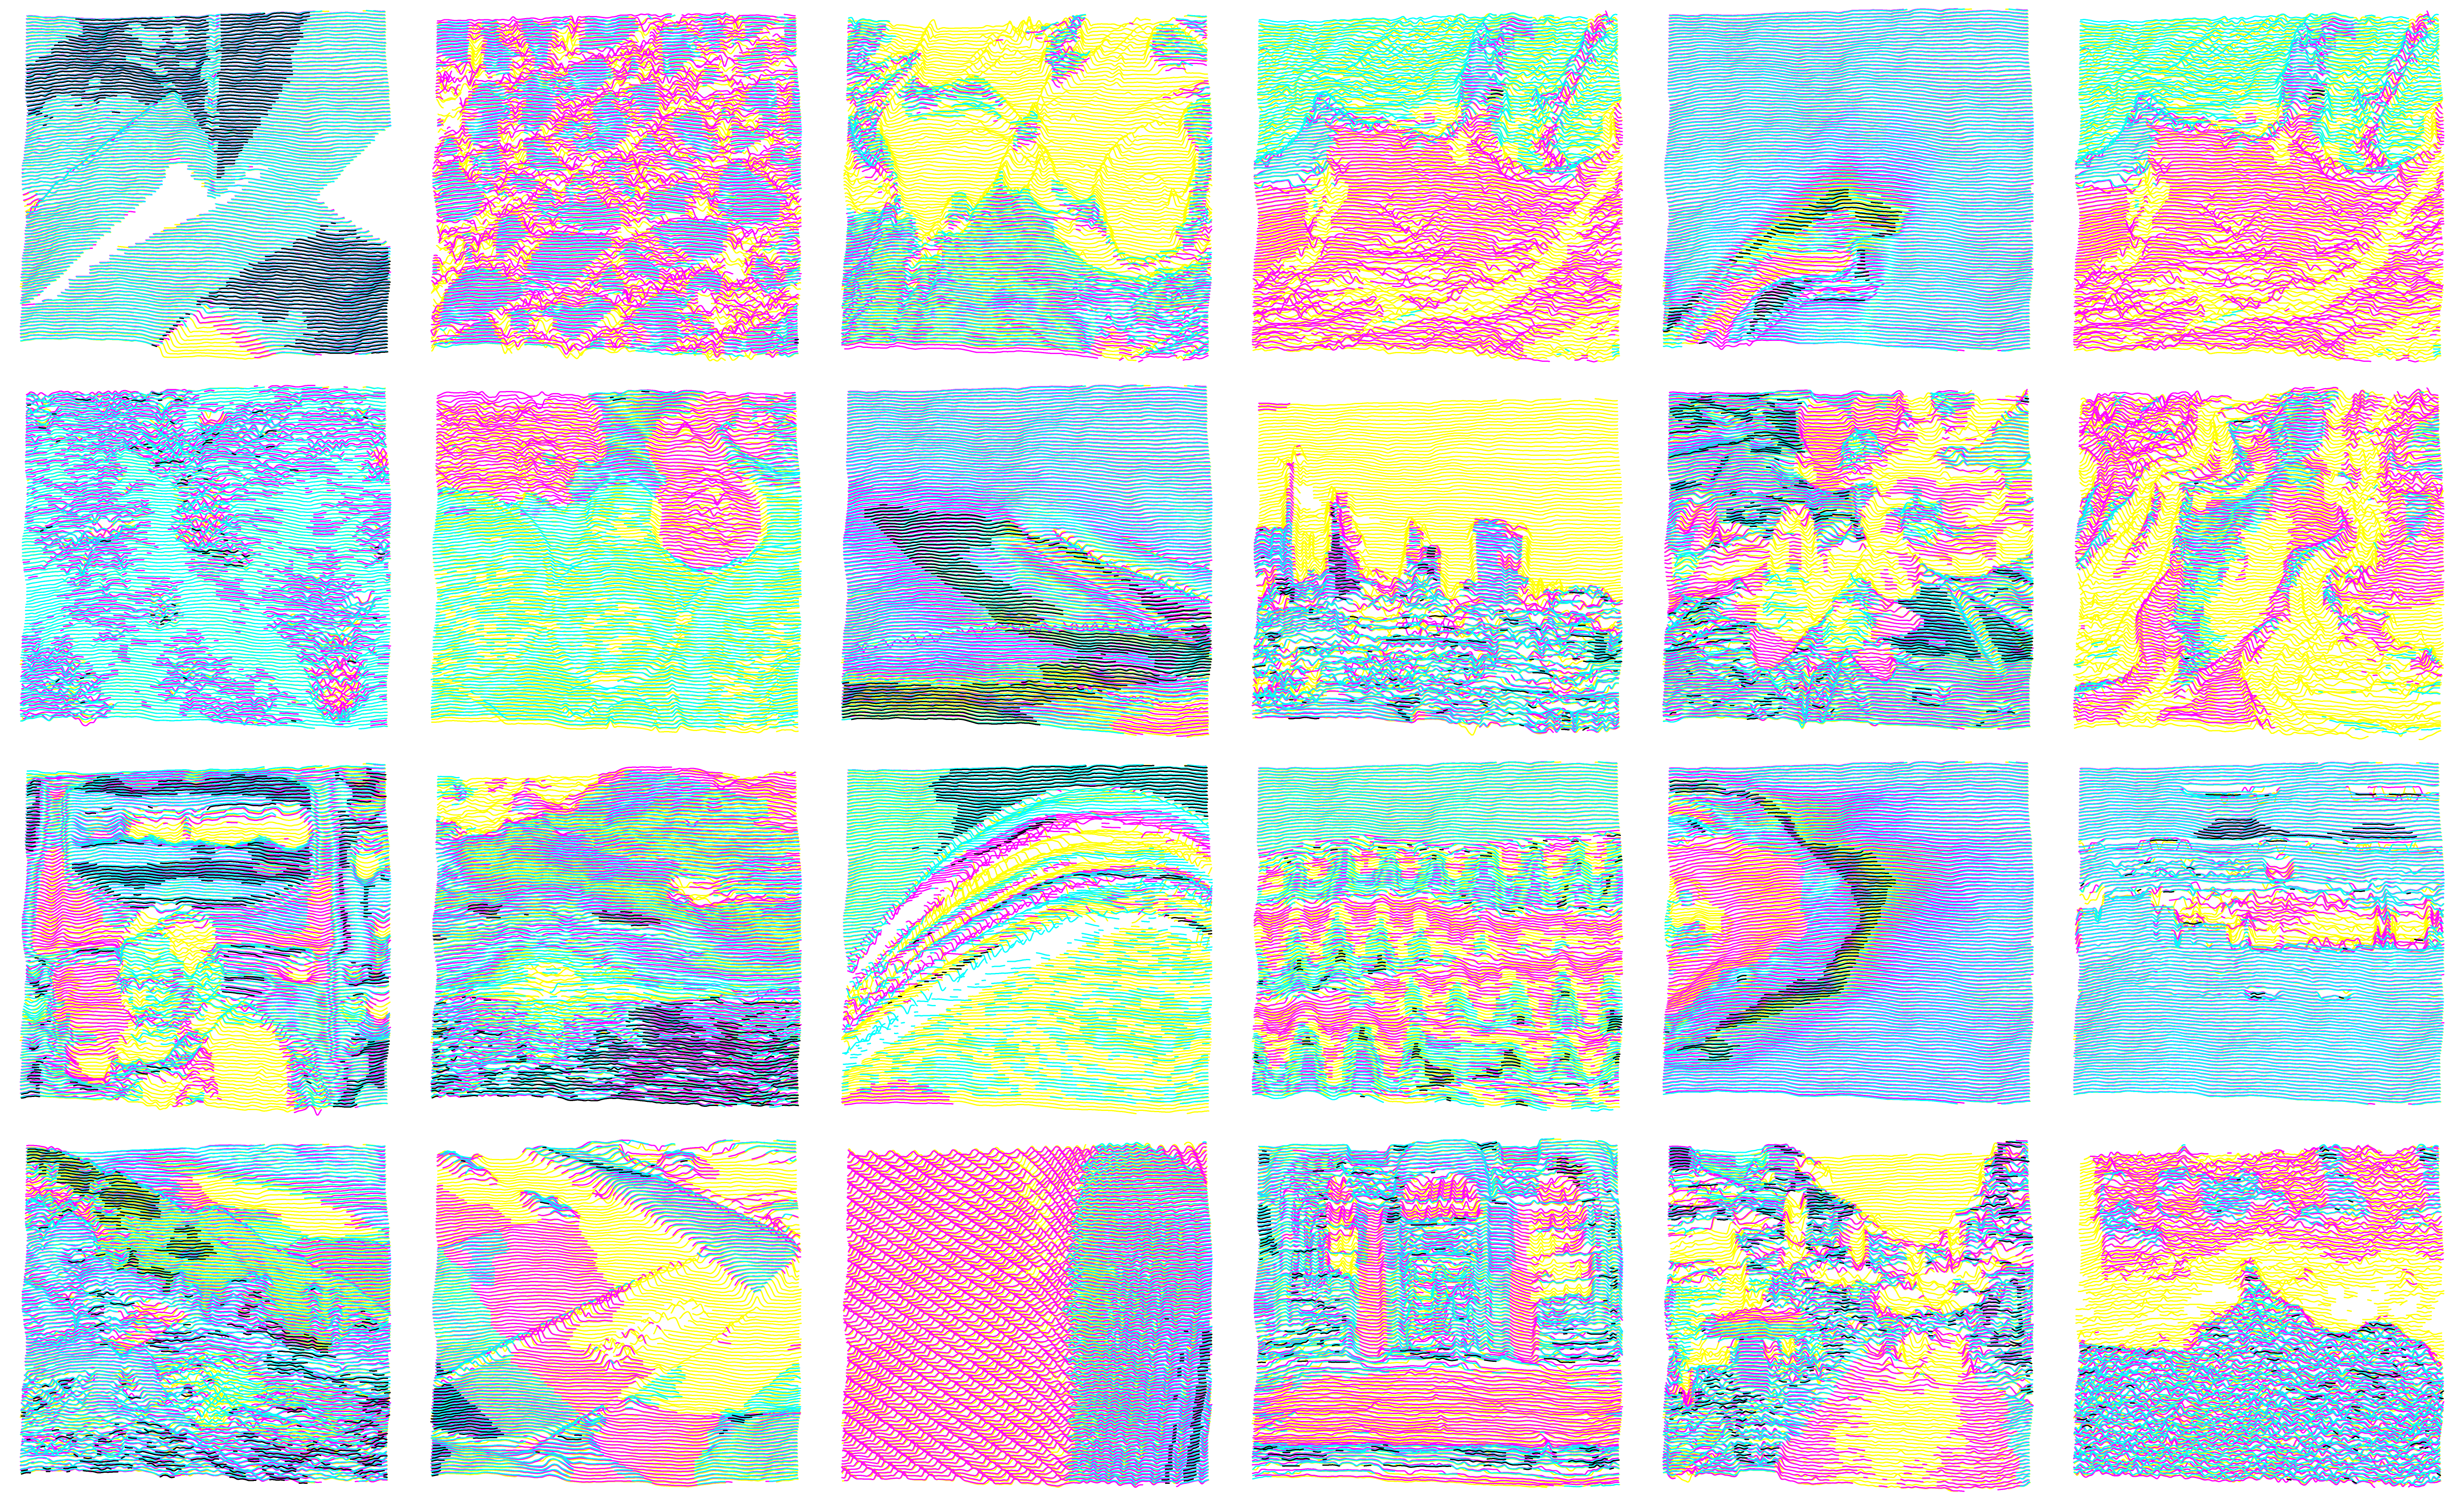 3 images of digital outputs from the plotmaker. They are very brightly colored and while they don't depict specific forms, they are chaotic and lovely.